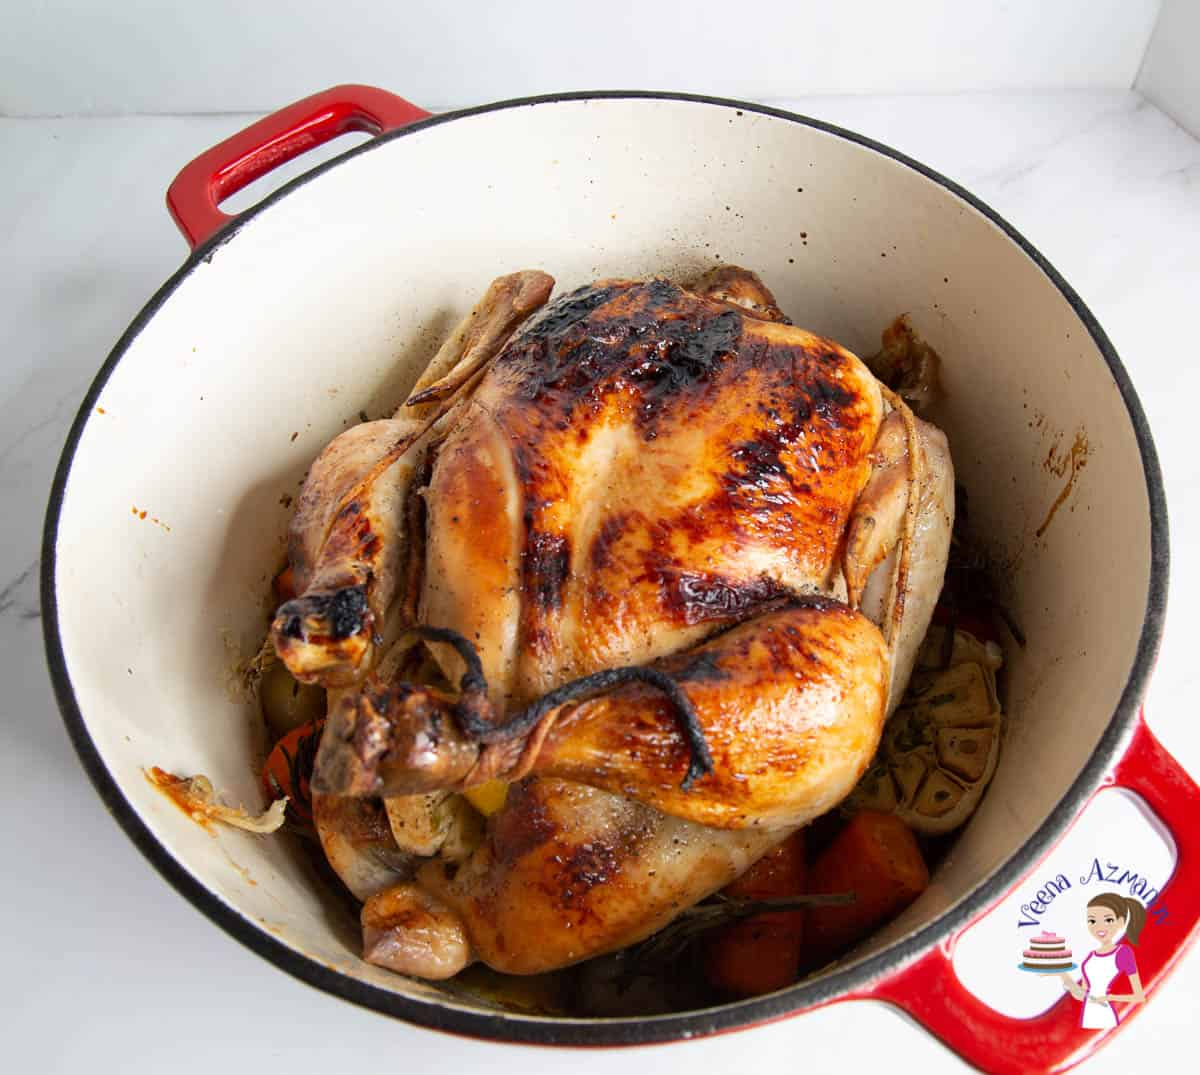 A roasted chicken in a dutch oven